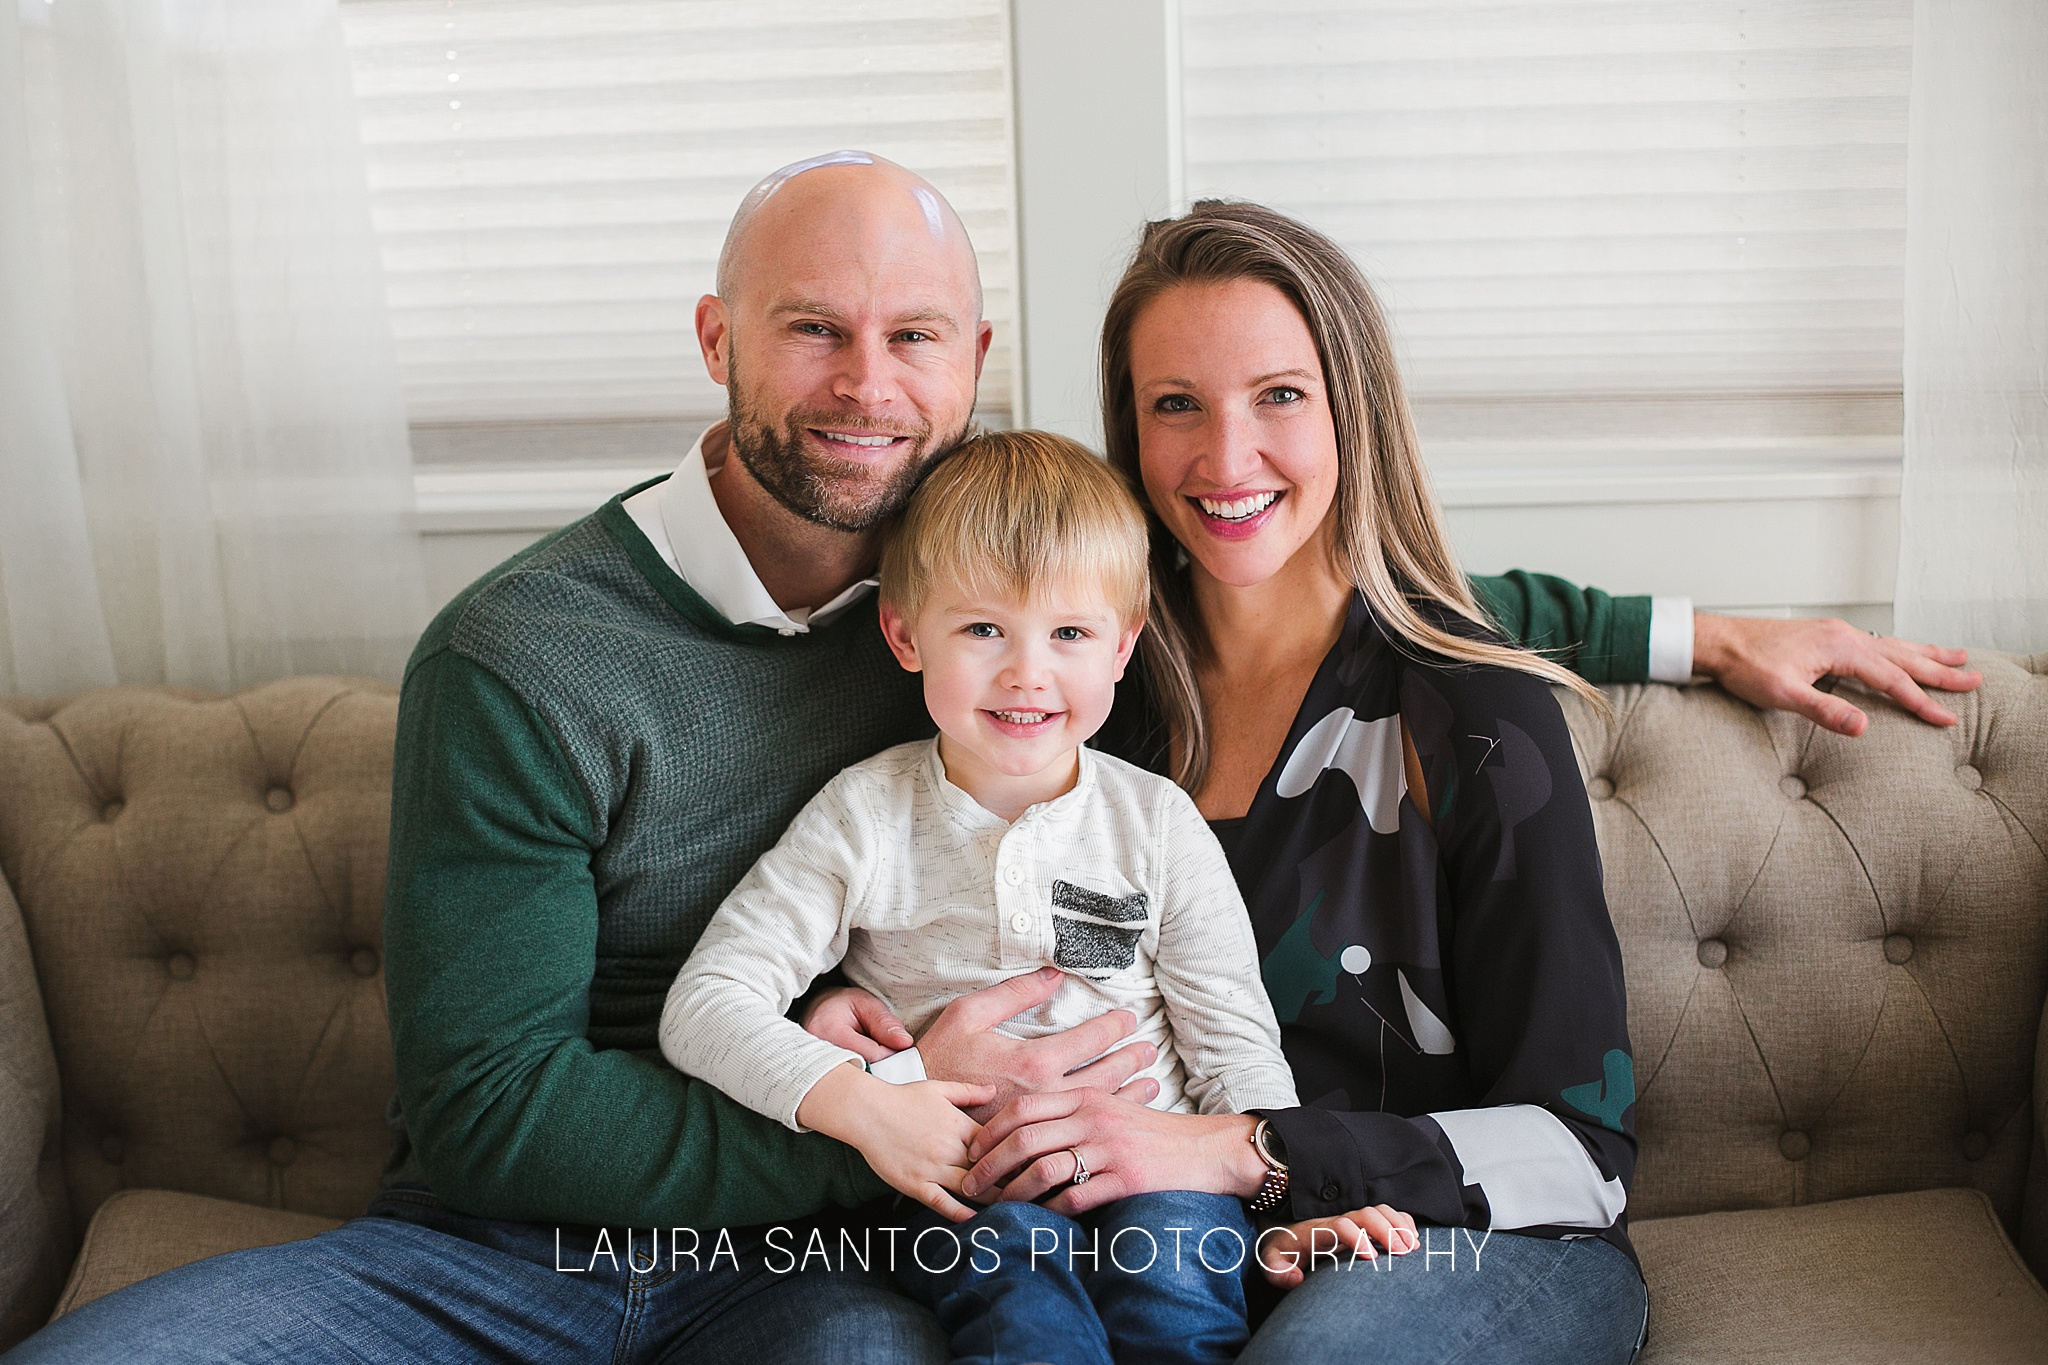 Laura Santos Photography Portland Oregon Family Photographer_0770.jpg